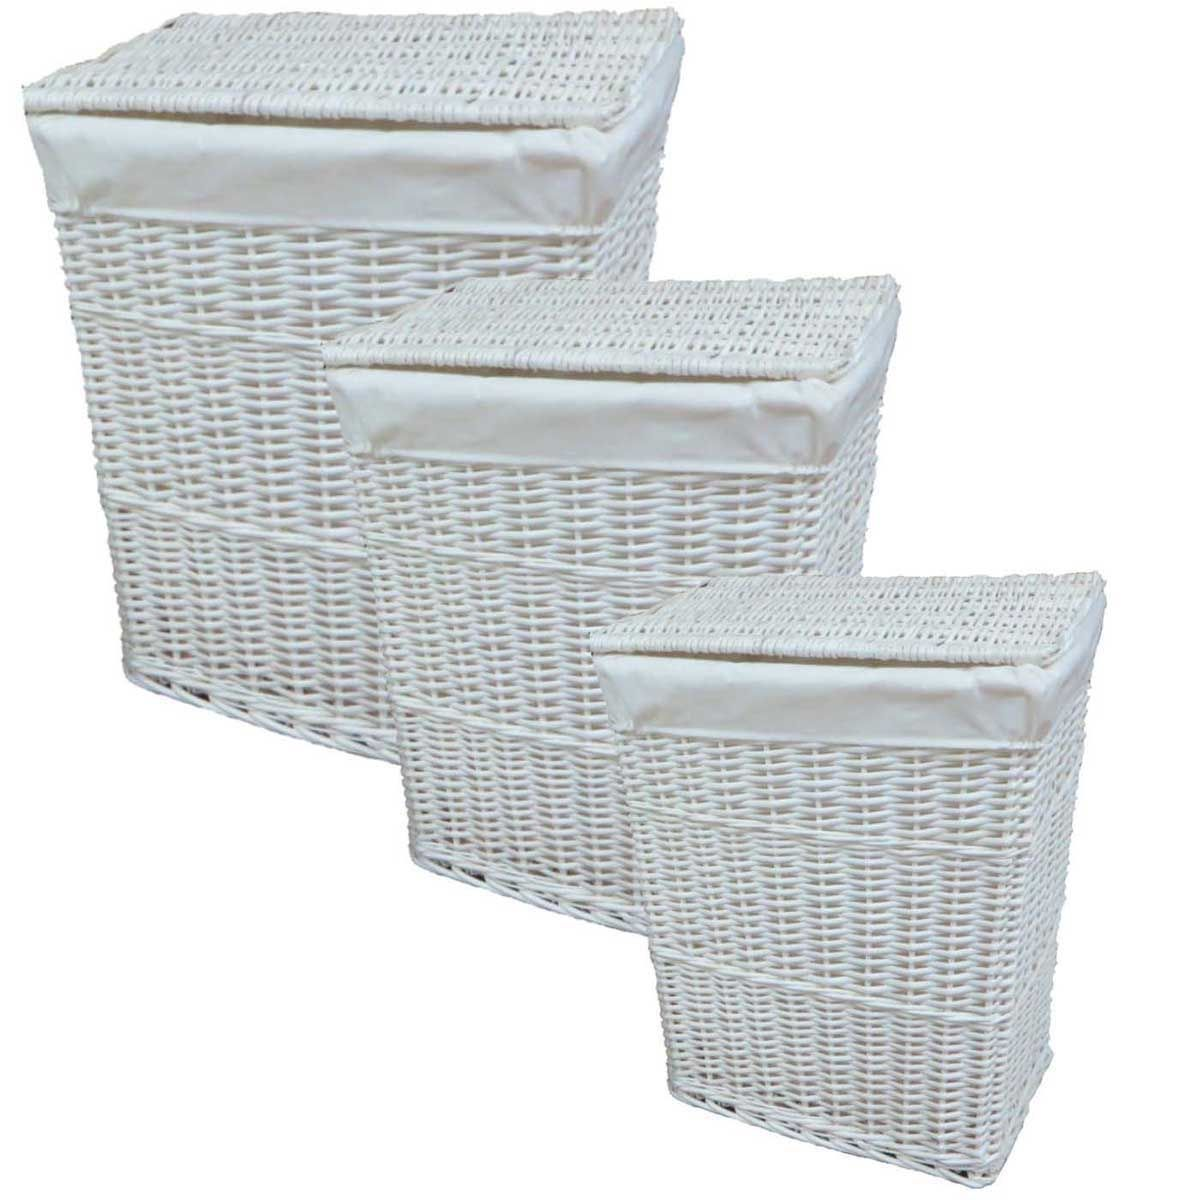 Willow Wicker Storage Basket With Liner For Home: Lidded White Wicker Willow Linen Laundry Bin Storage